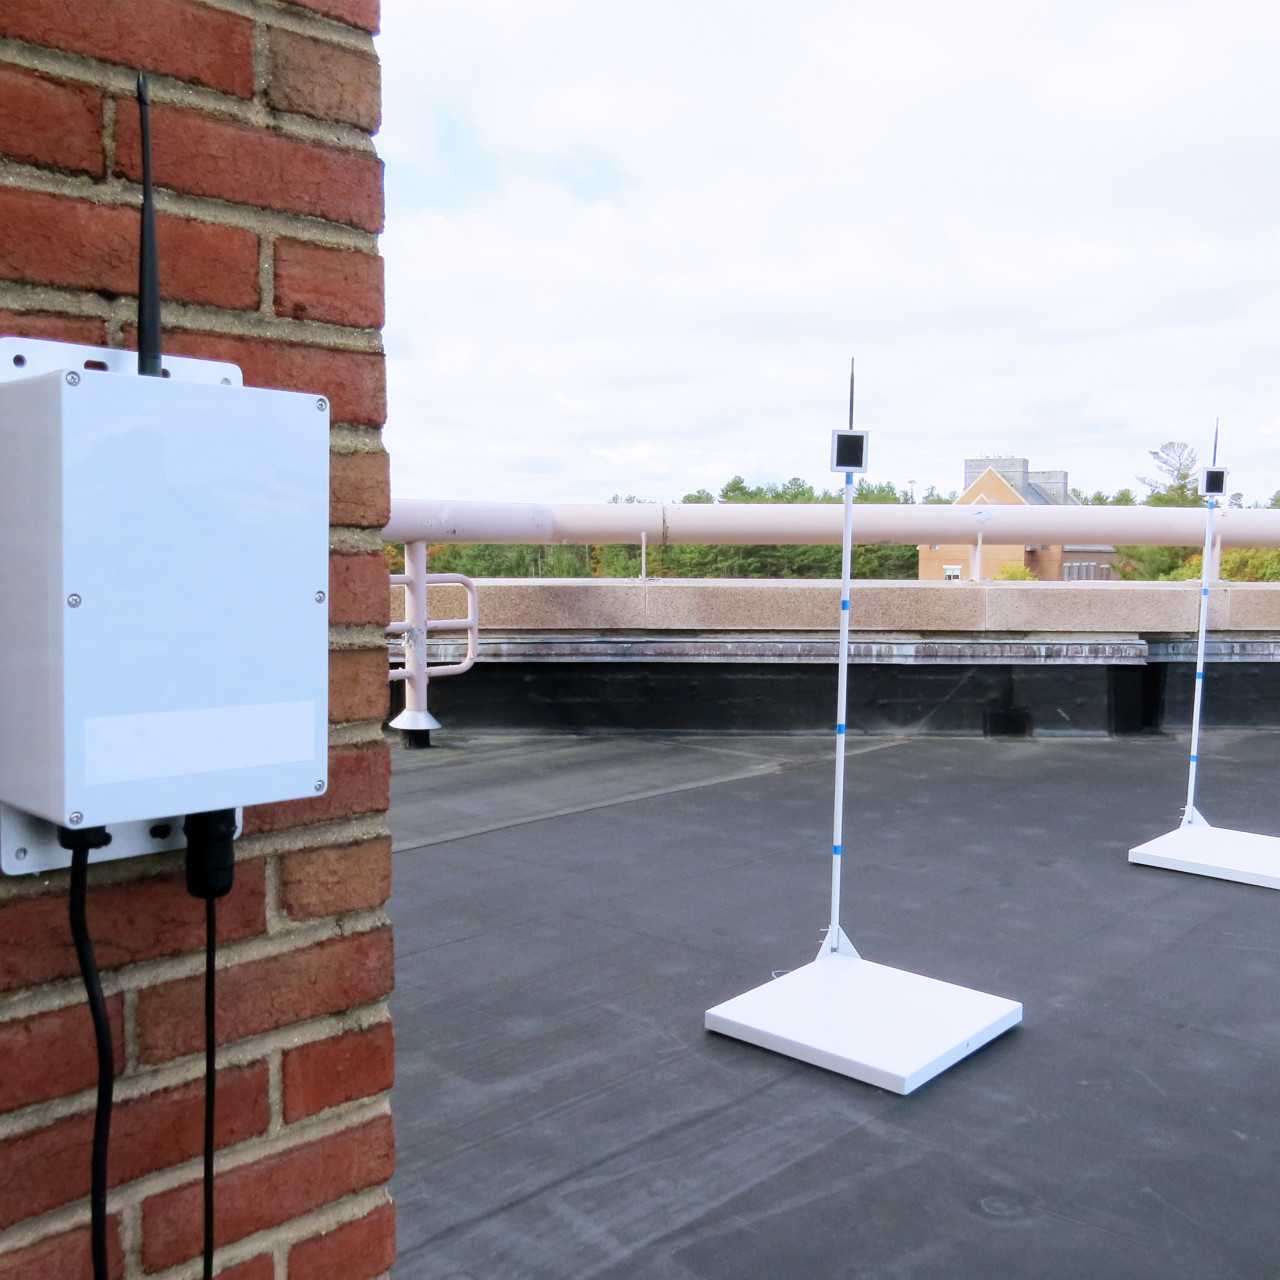 Rooftop Snow Monitoring and Removal